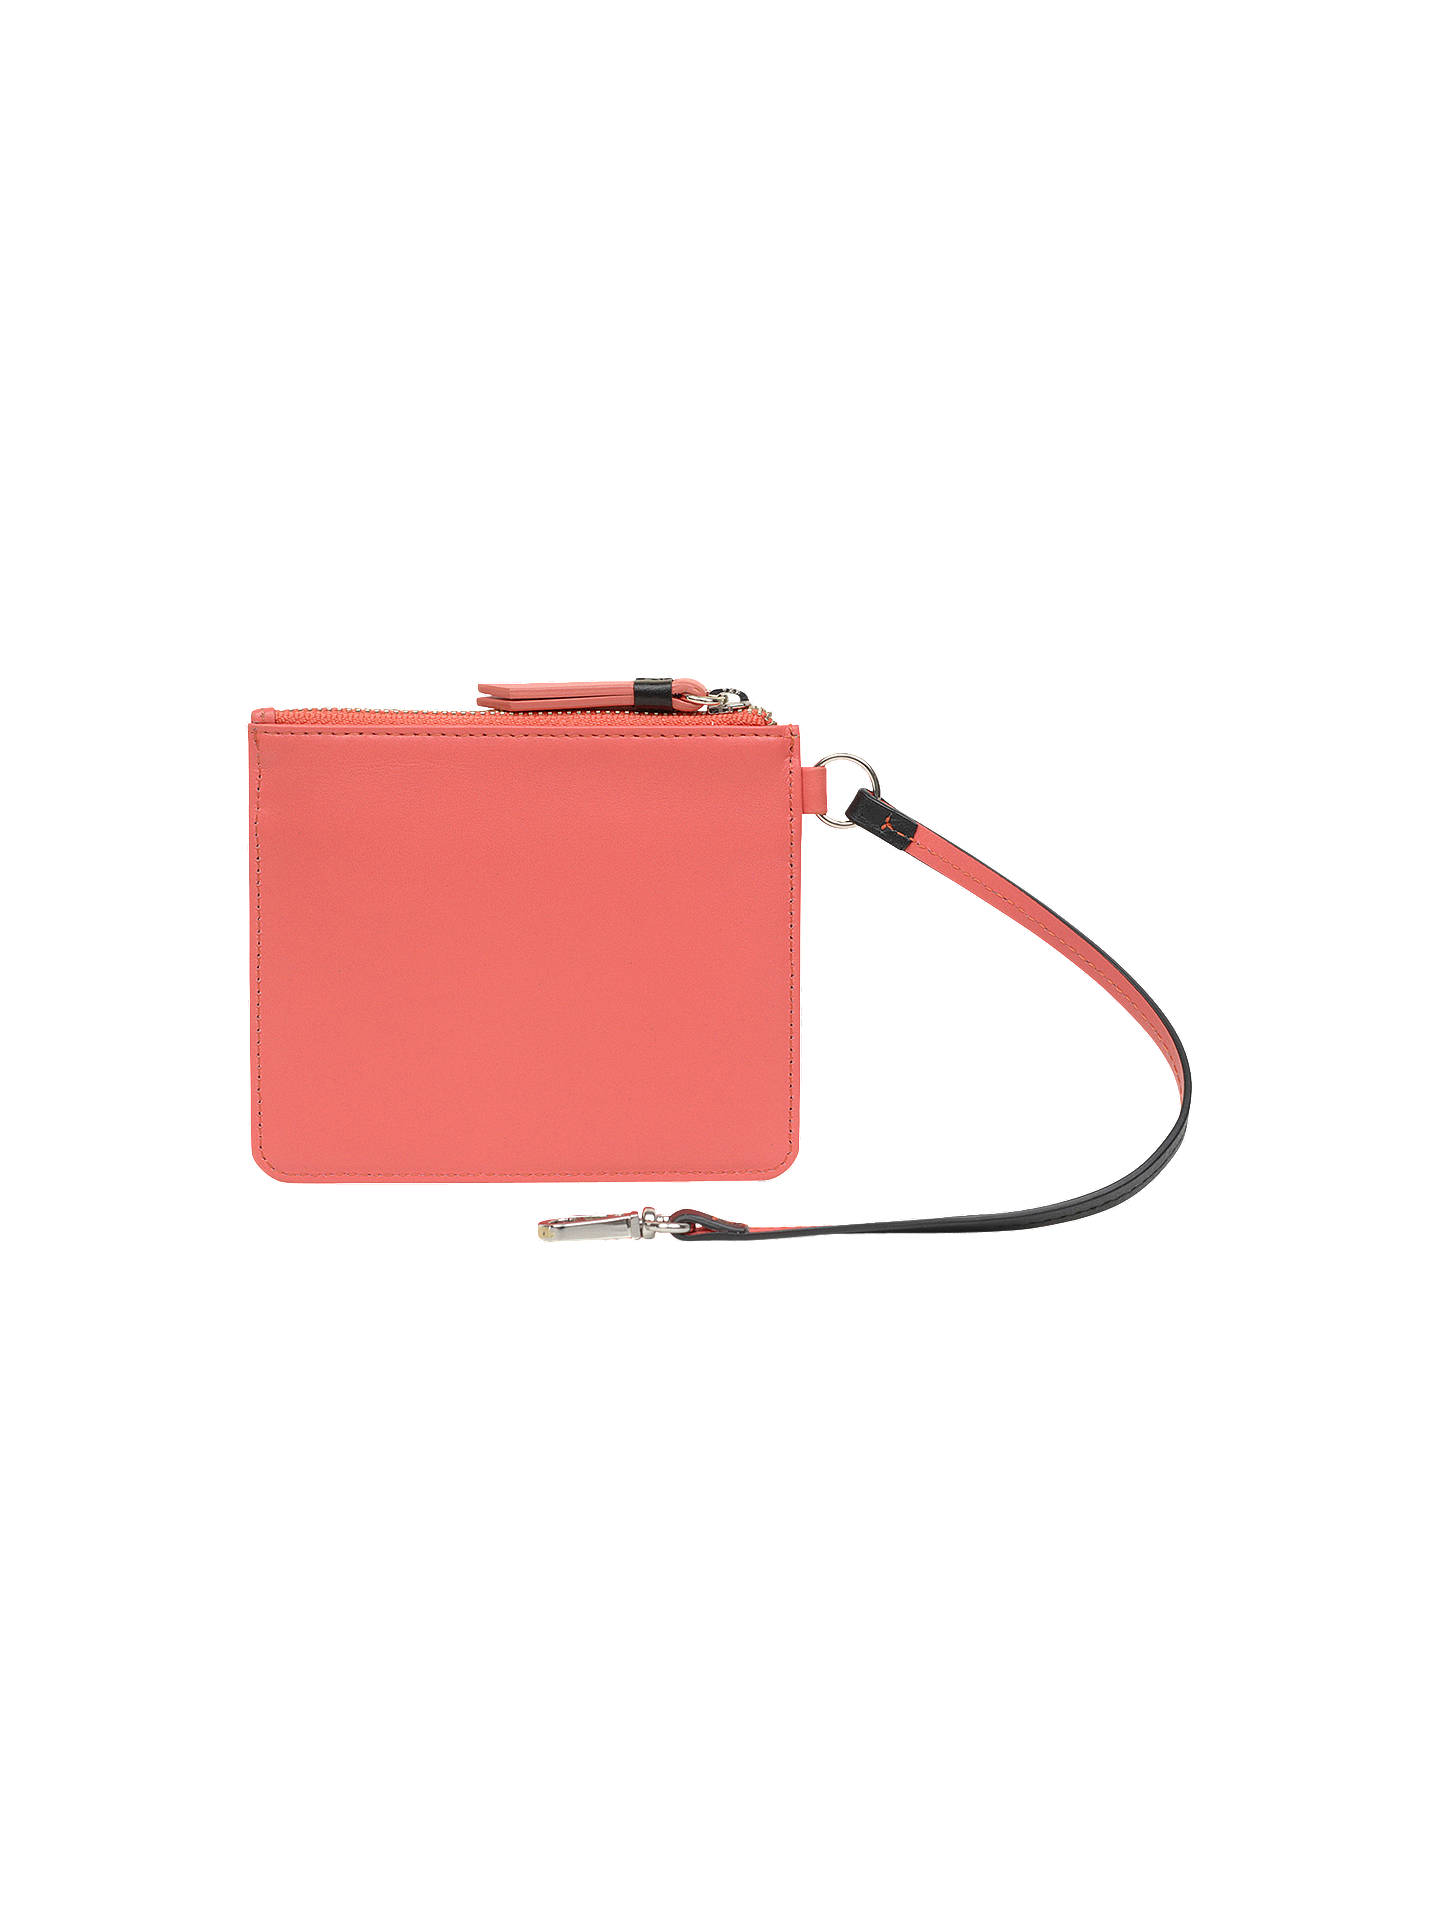 Buy Radley Flex Small Leather Zip Top Coin Purse, Pink Online at johnlewis.com